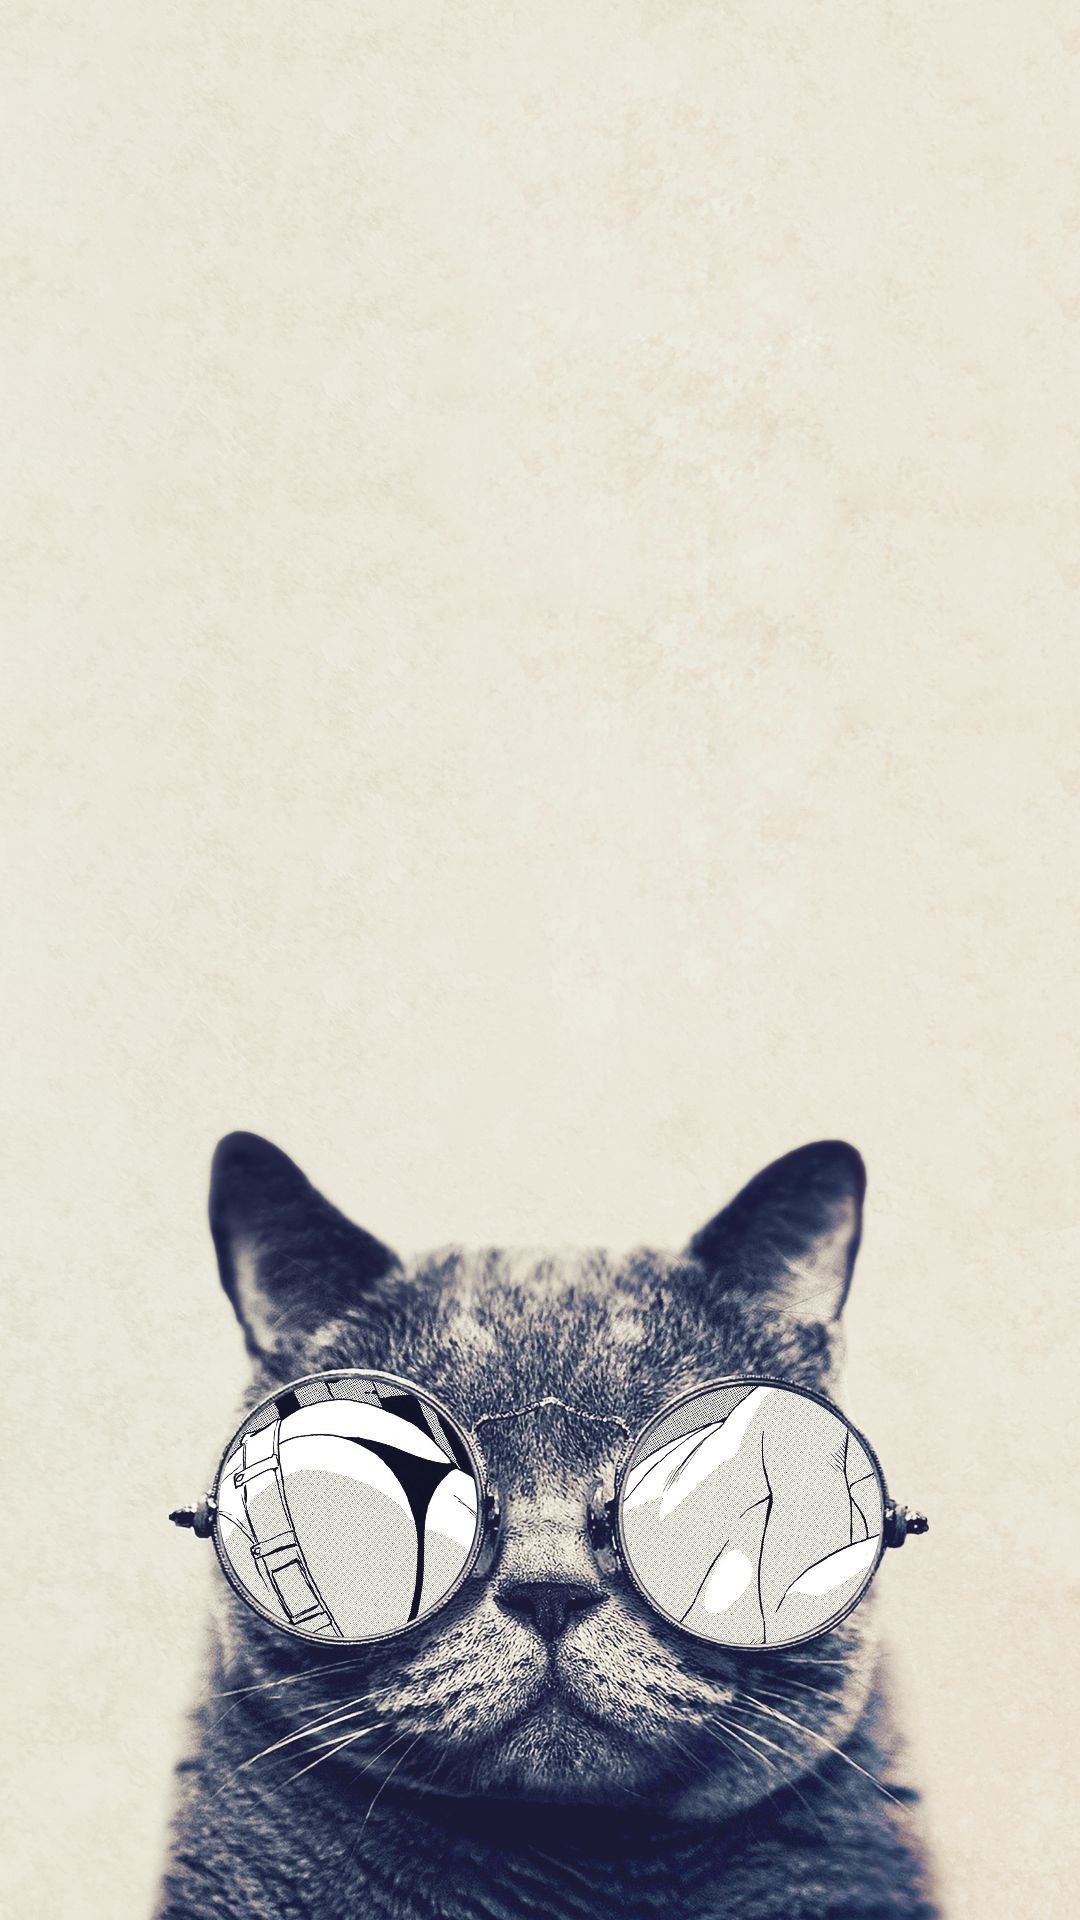 Funny Iphone Wallpaper Free To Download With Images Cat Phone